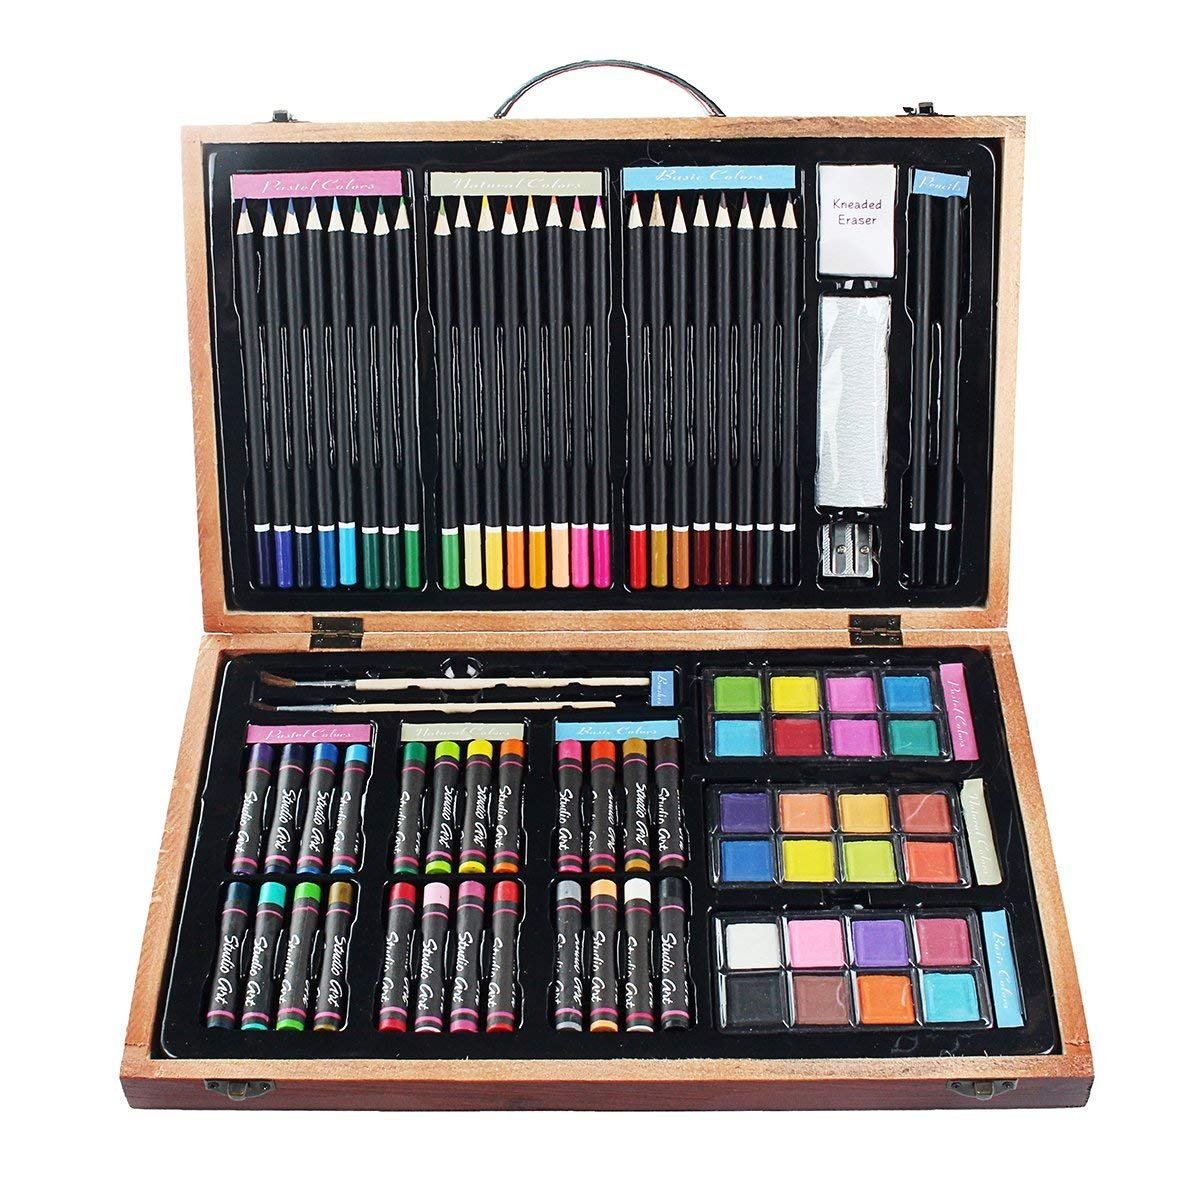 ALCST&CX Wooden Art Set (80 Piece) Deluxe Art Creativity Set and Professional Art Set Box for Colouring Beginners, Academy Wooden Box Arts Great Gift For Artists, Adults Teens, and Children